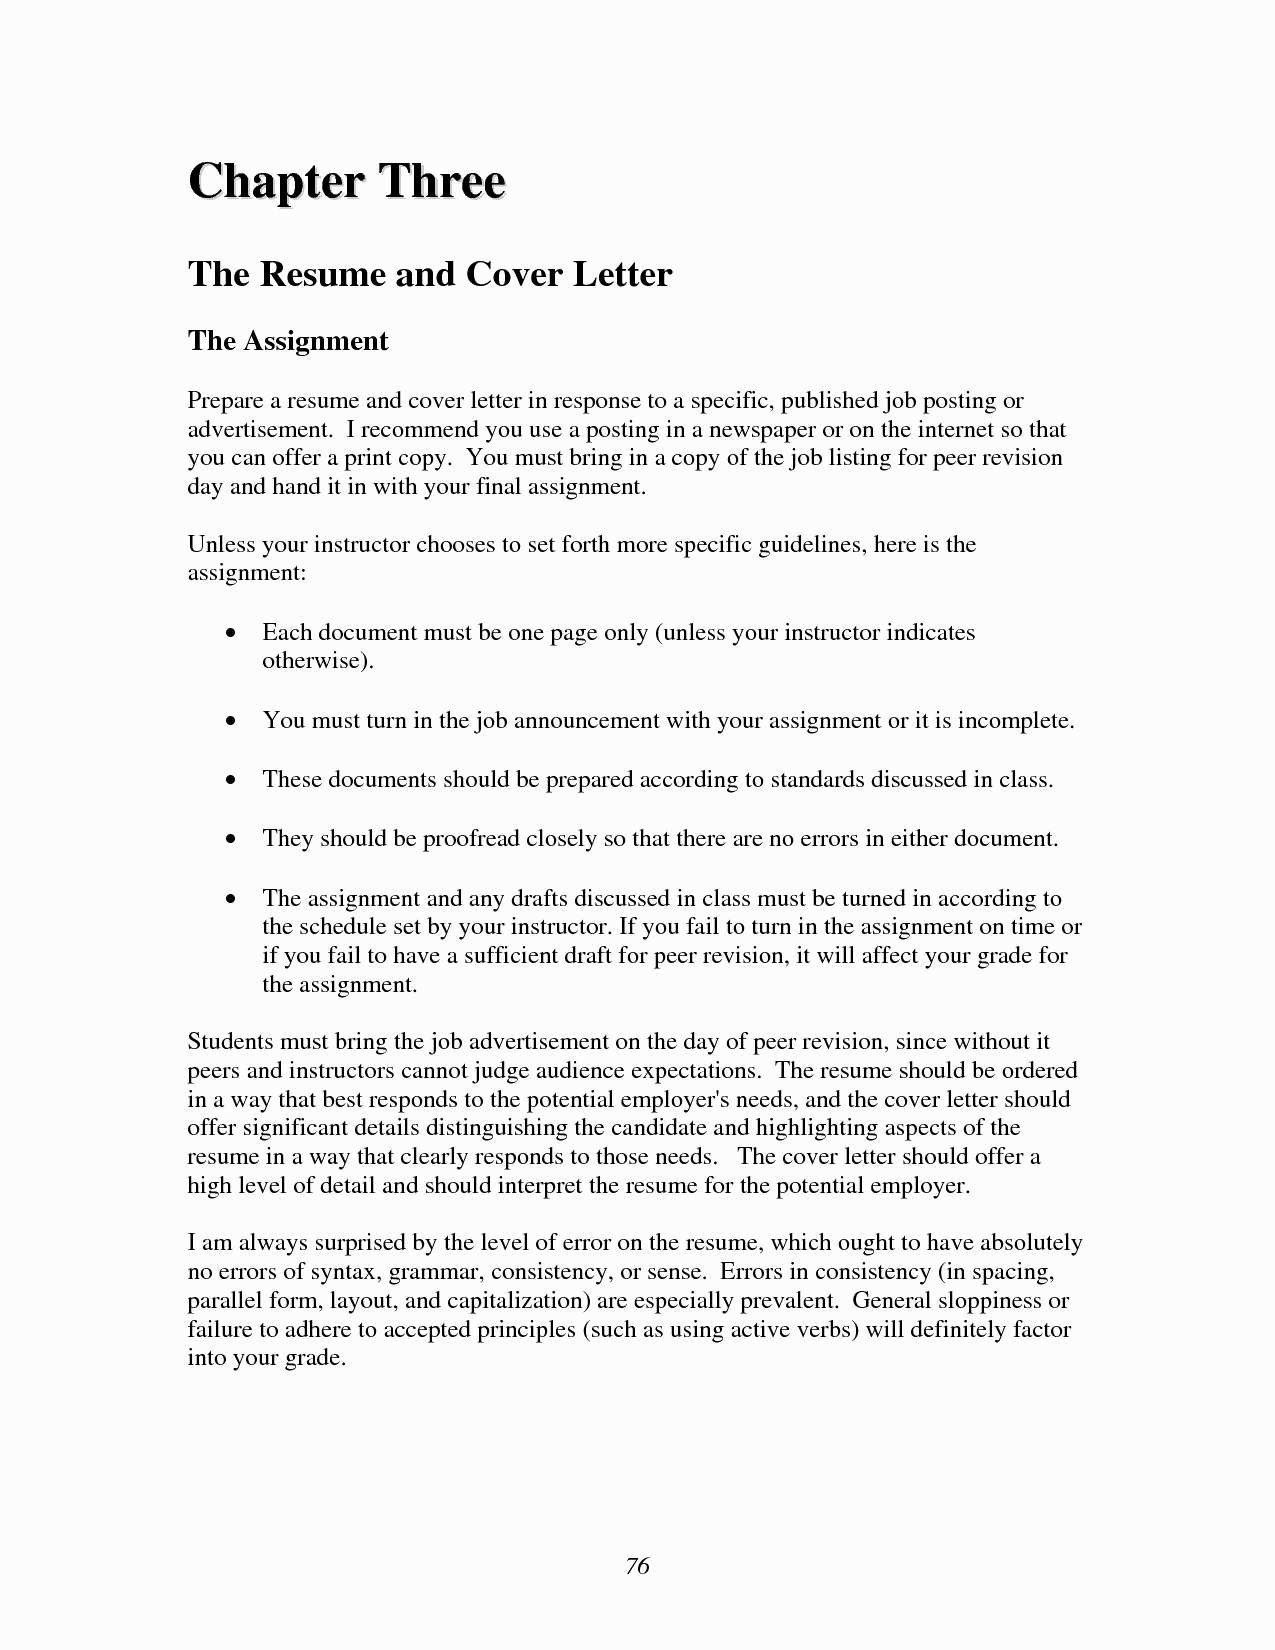 Cover Letter for Essay Template - Resume and Cover Letter Template Beautiful Fresh Job Fer Letter